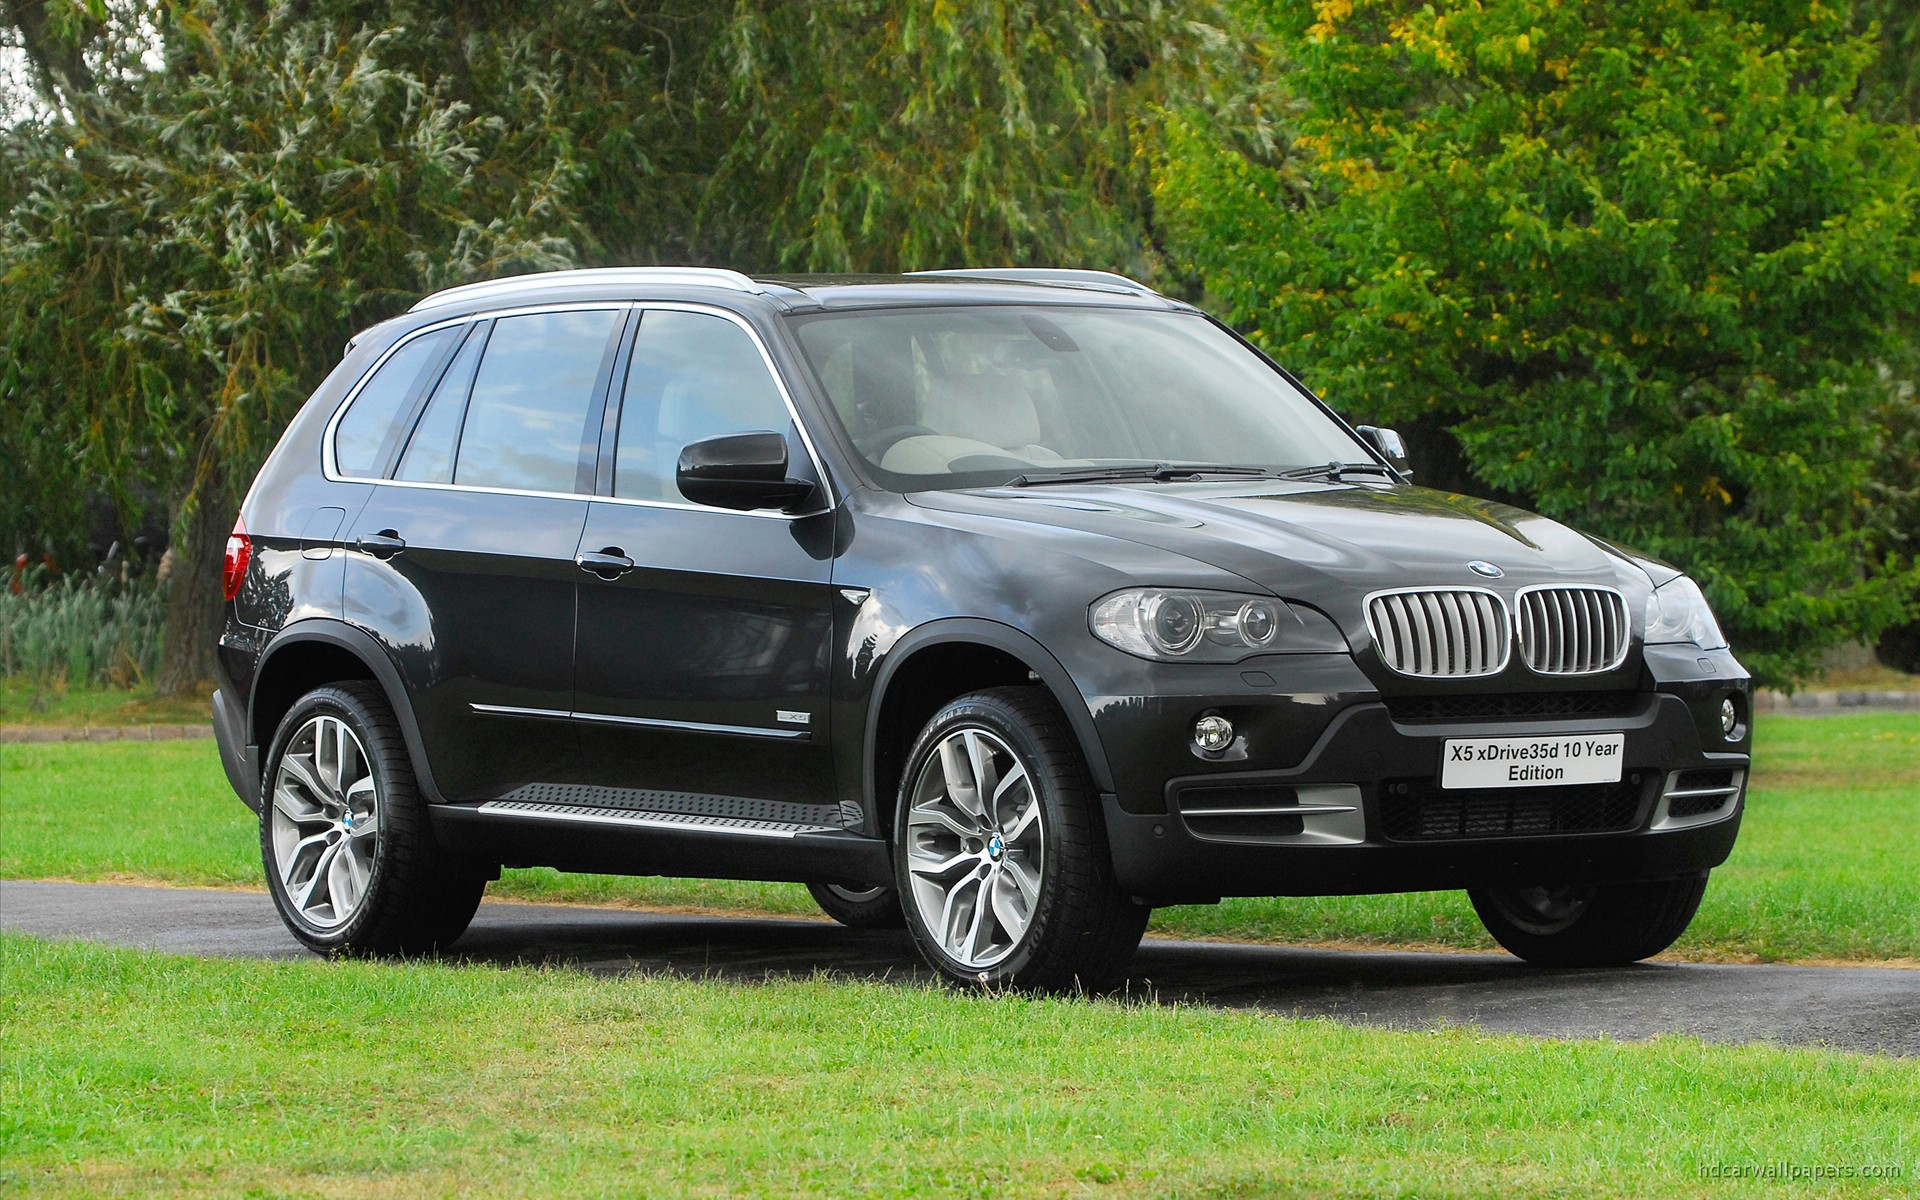 BMW X5 xDrive35d 10 Year Edition Wallpaper | HD Car Wallpapers